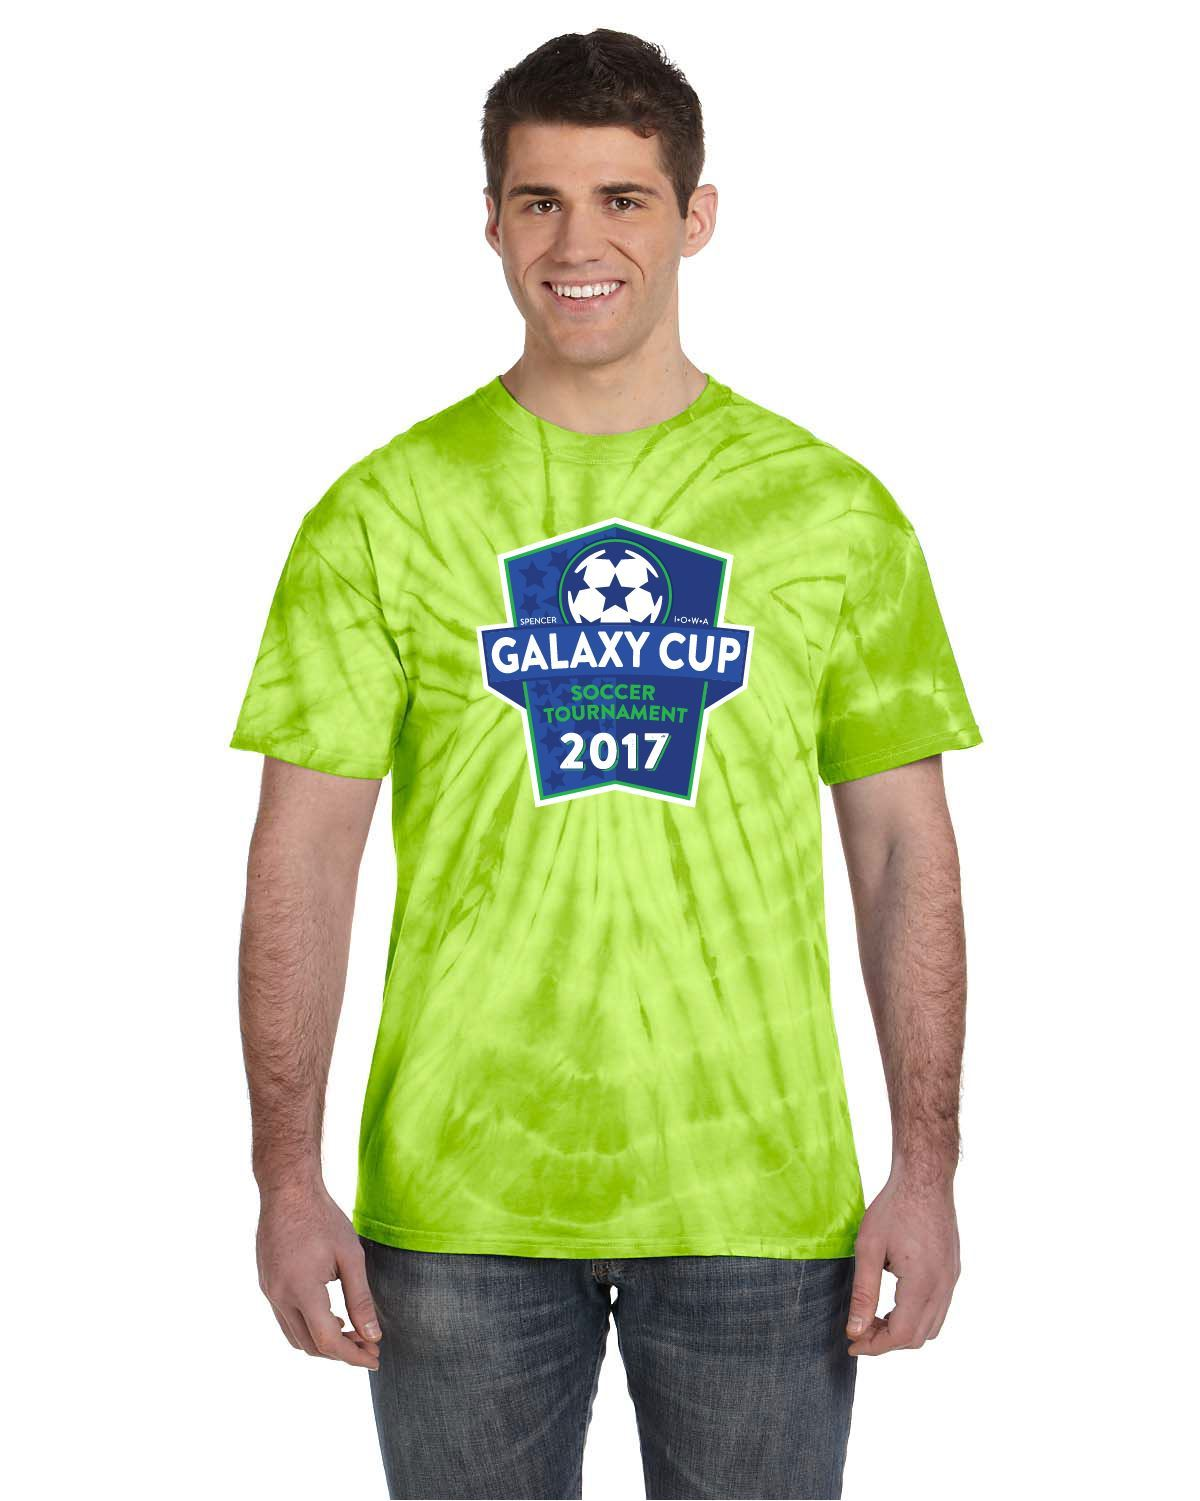 Galaxy Cup Short Sleeve Tee - Lime Tie Dye Goal Kick Soccer Youth Large